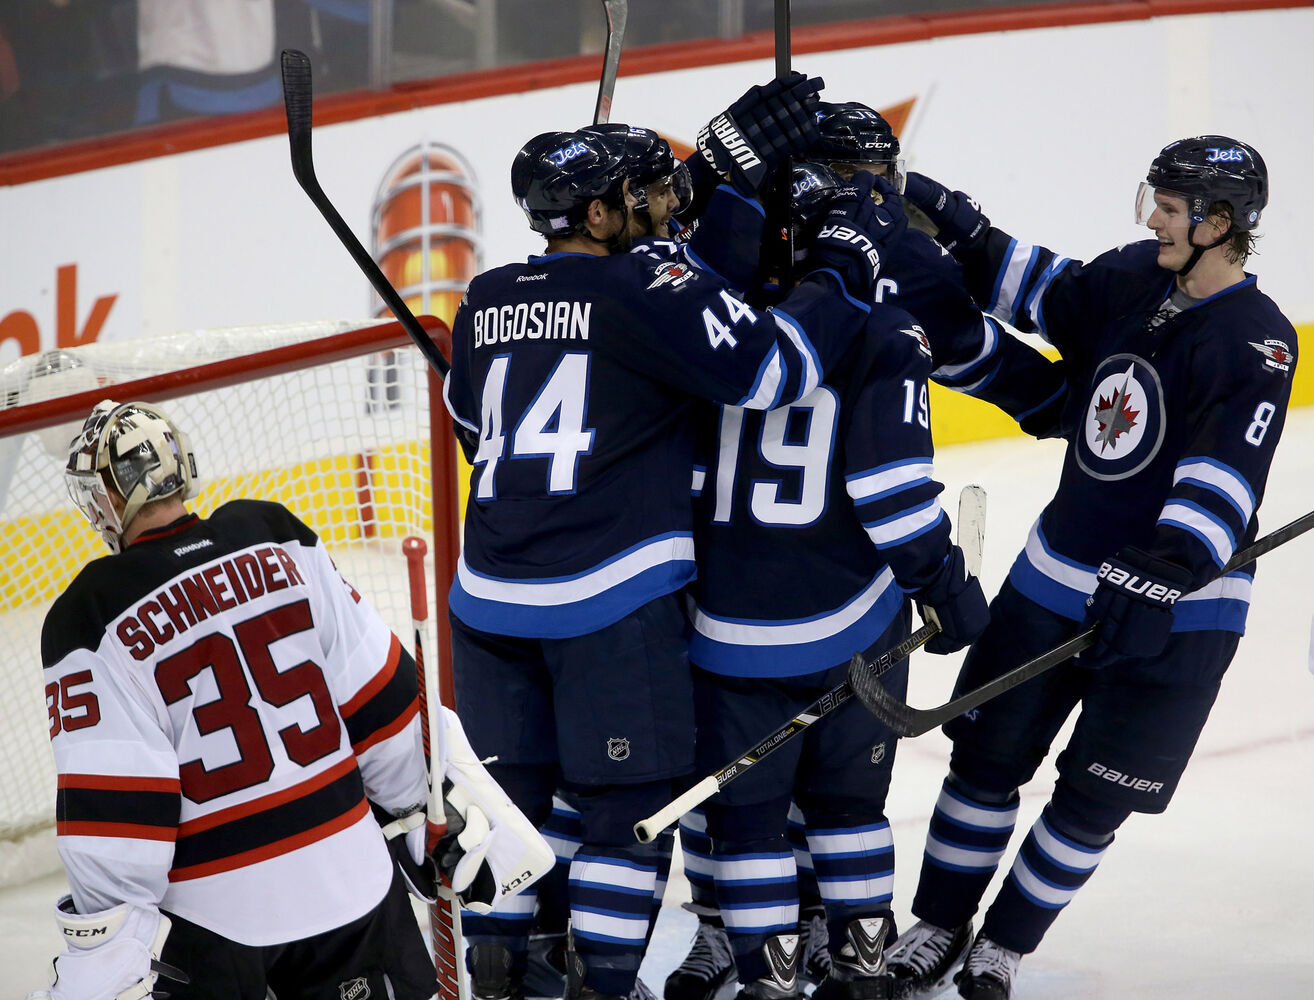 The Jets celebrate a third period goal by Andrew Ladd as Cory Schneider looks on.